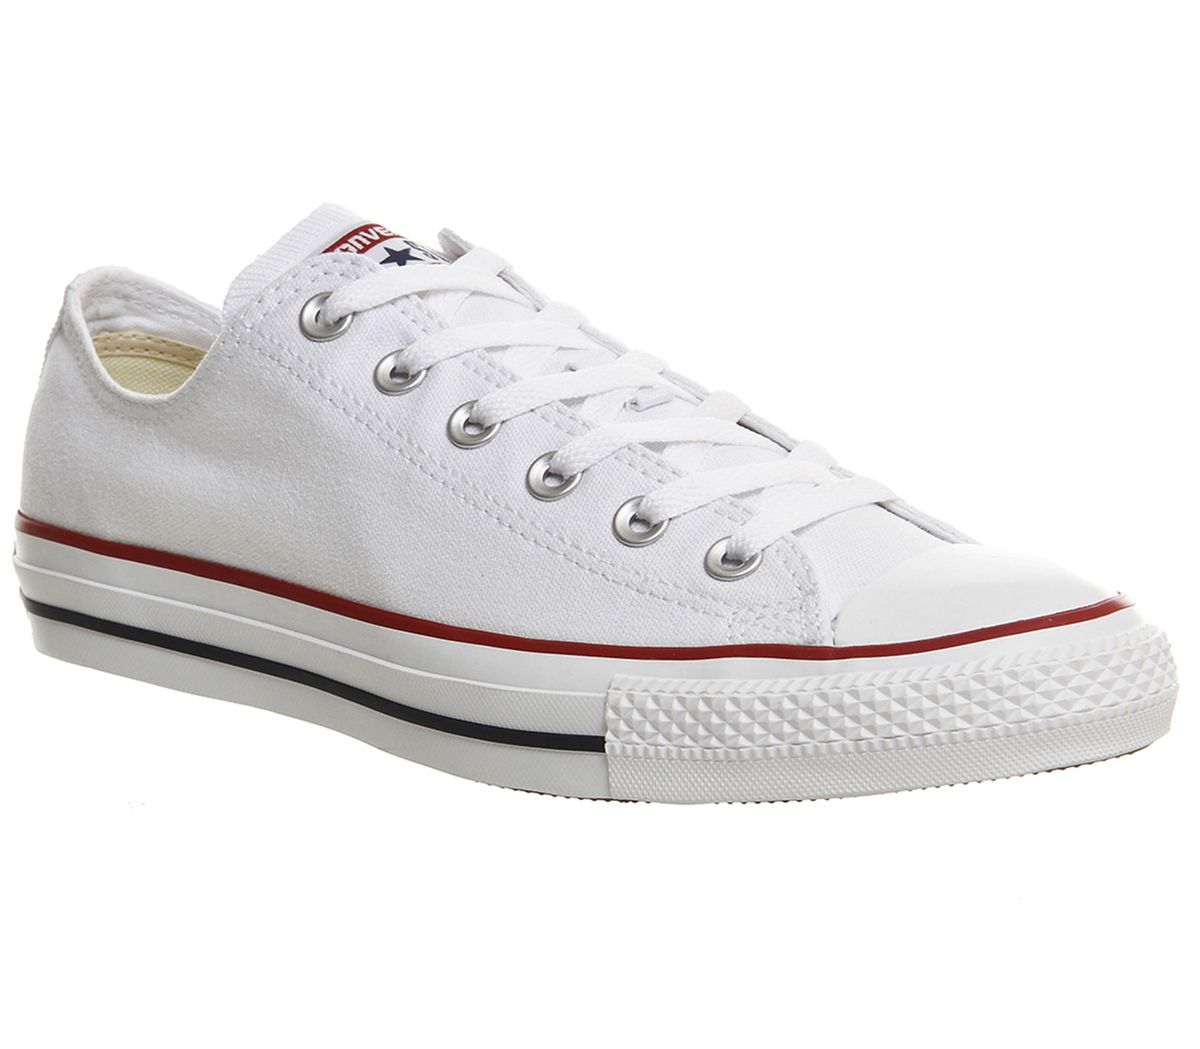 c867726ccbbb8c Converse All Star Low White Canvas - Unisex Sports